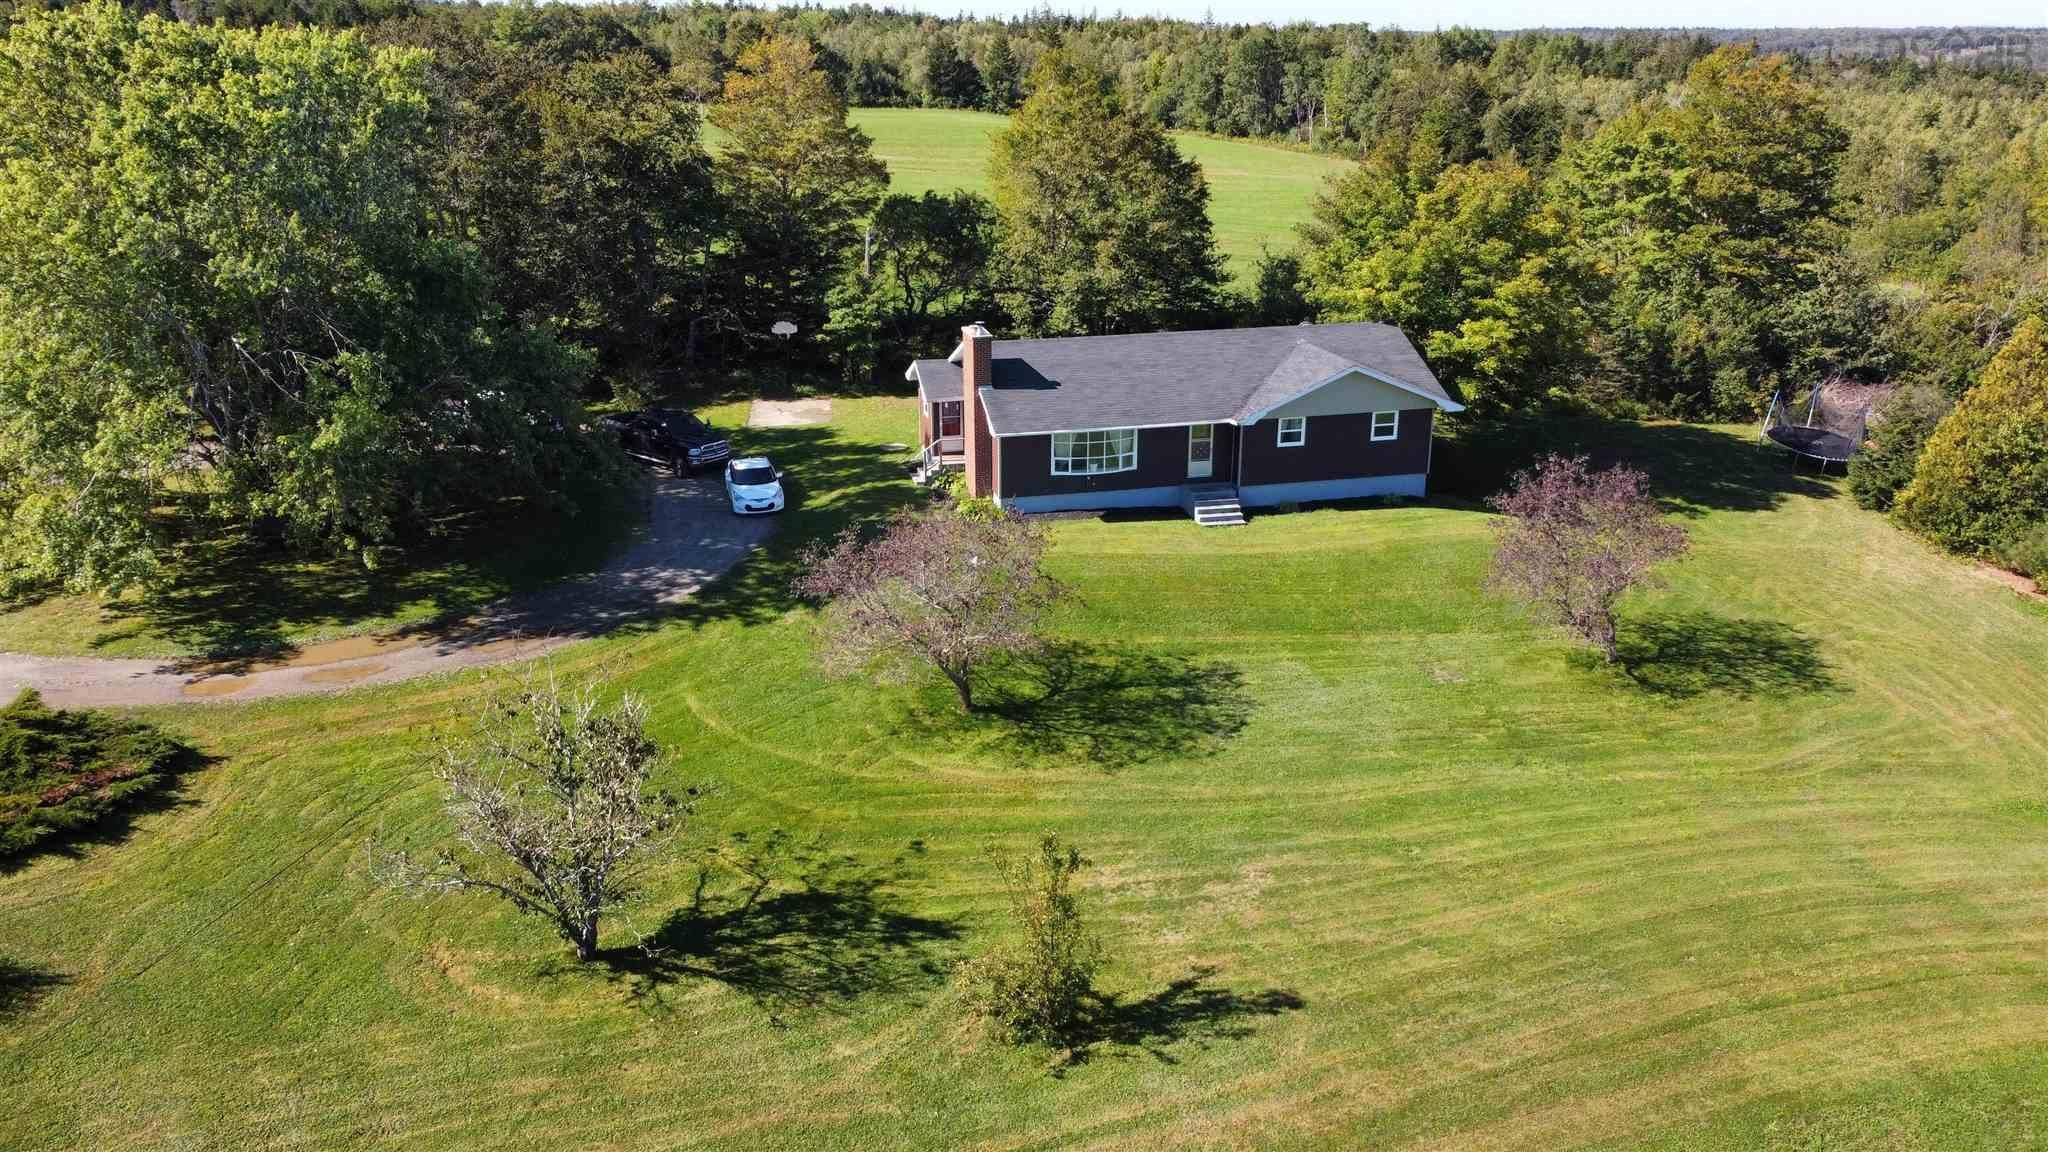 Main Photo: 3003 RIDGE Road in Acaciaville: 401-Digby County Residential for sale (Annapolis Valley)  : MLS®# 202123650